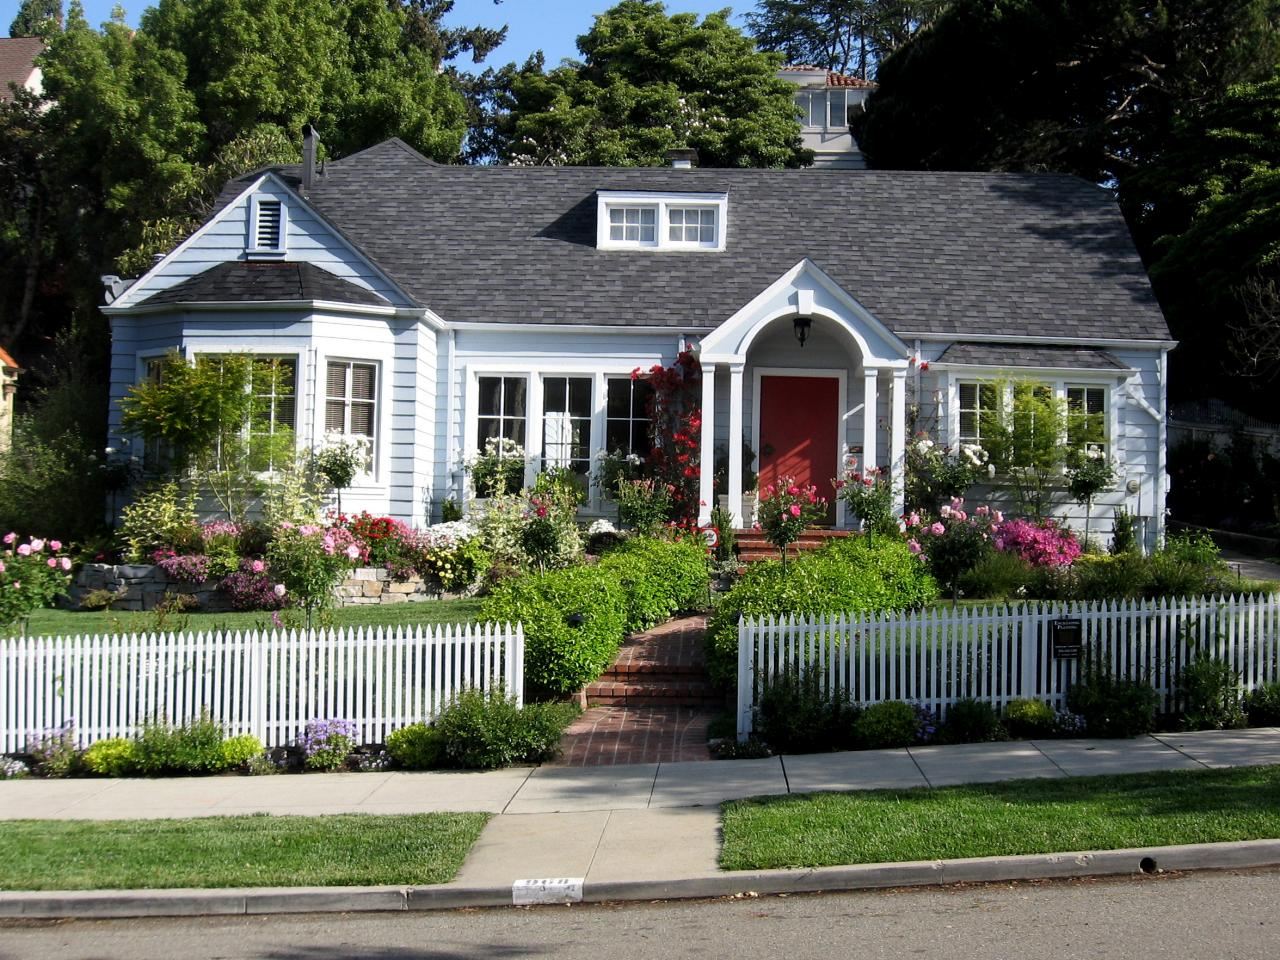 Landscaping tips that can help sell your home hgtv for What is a cottage